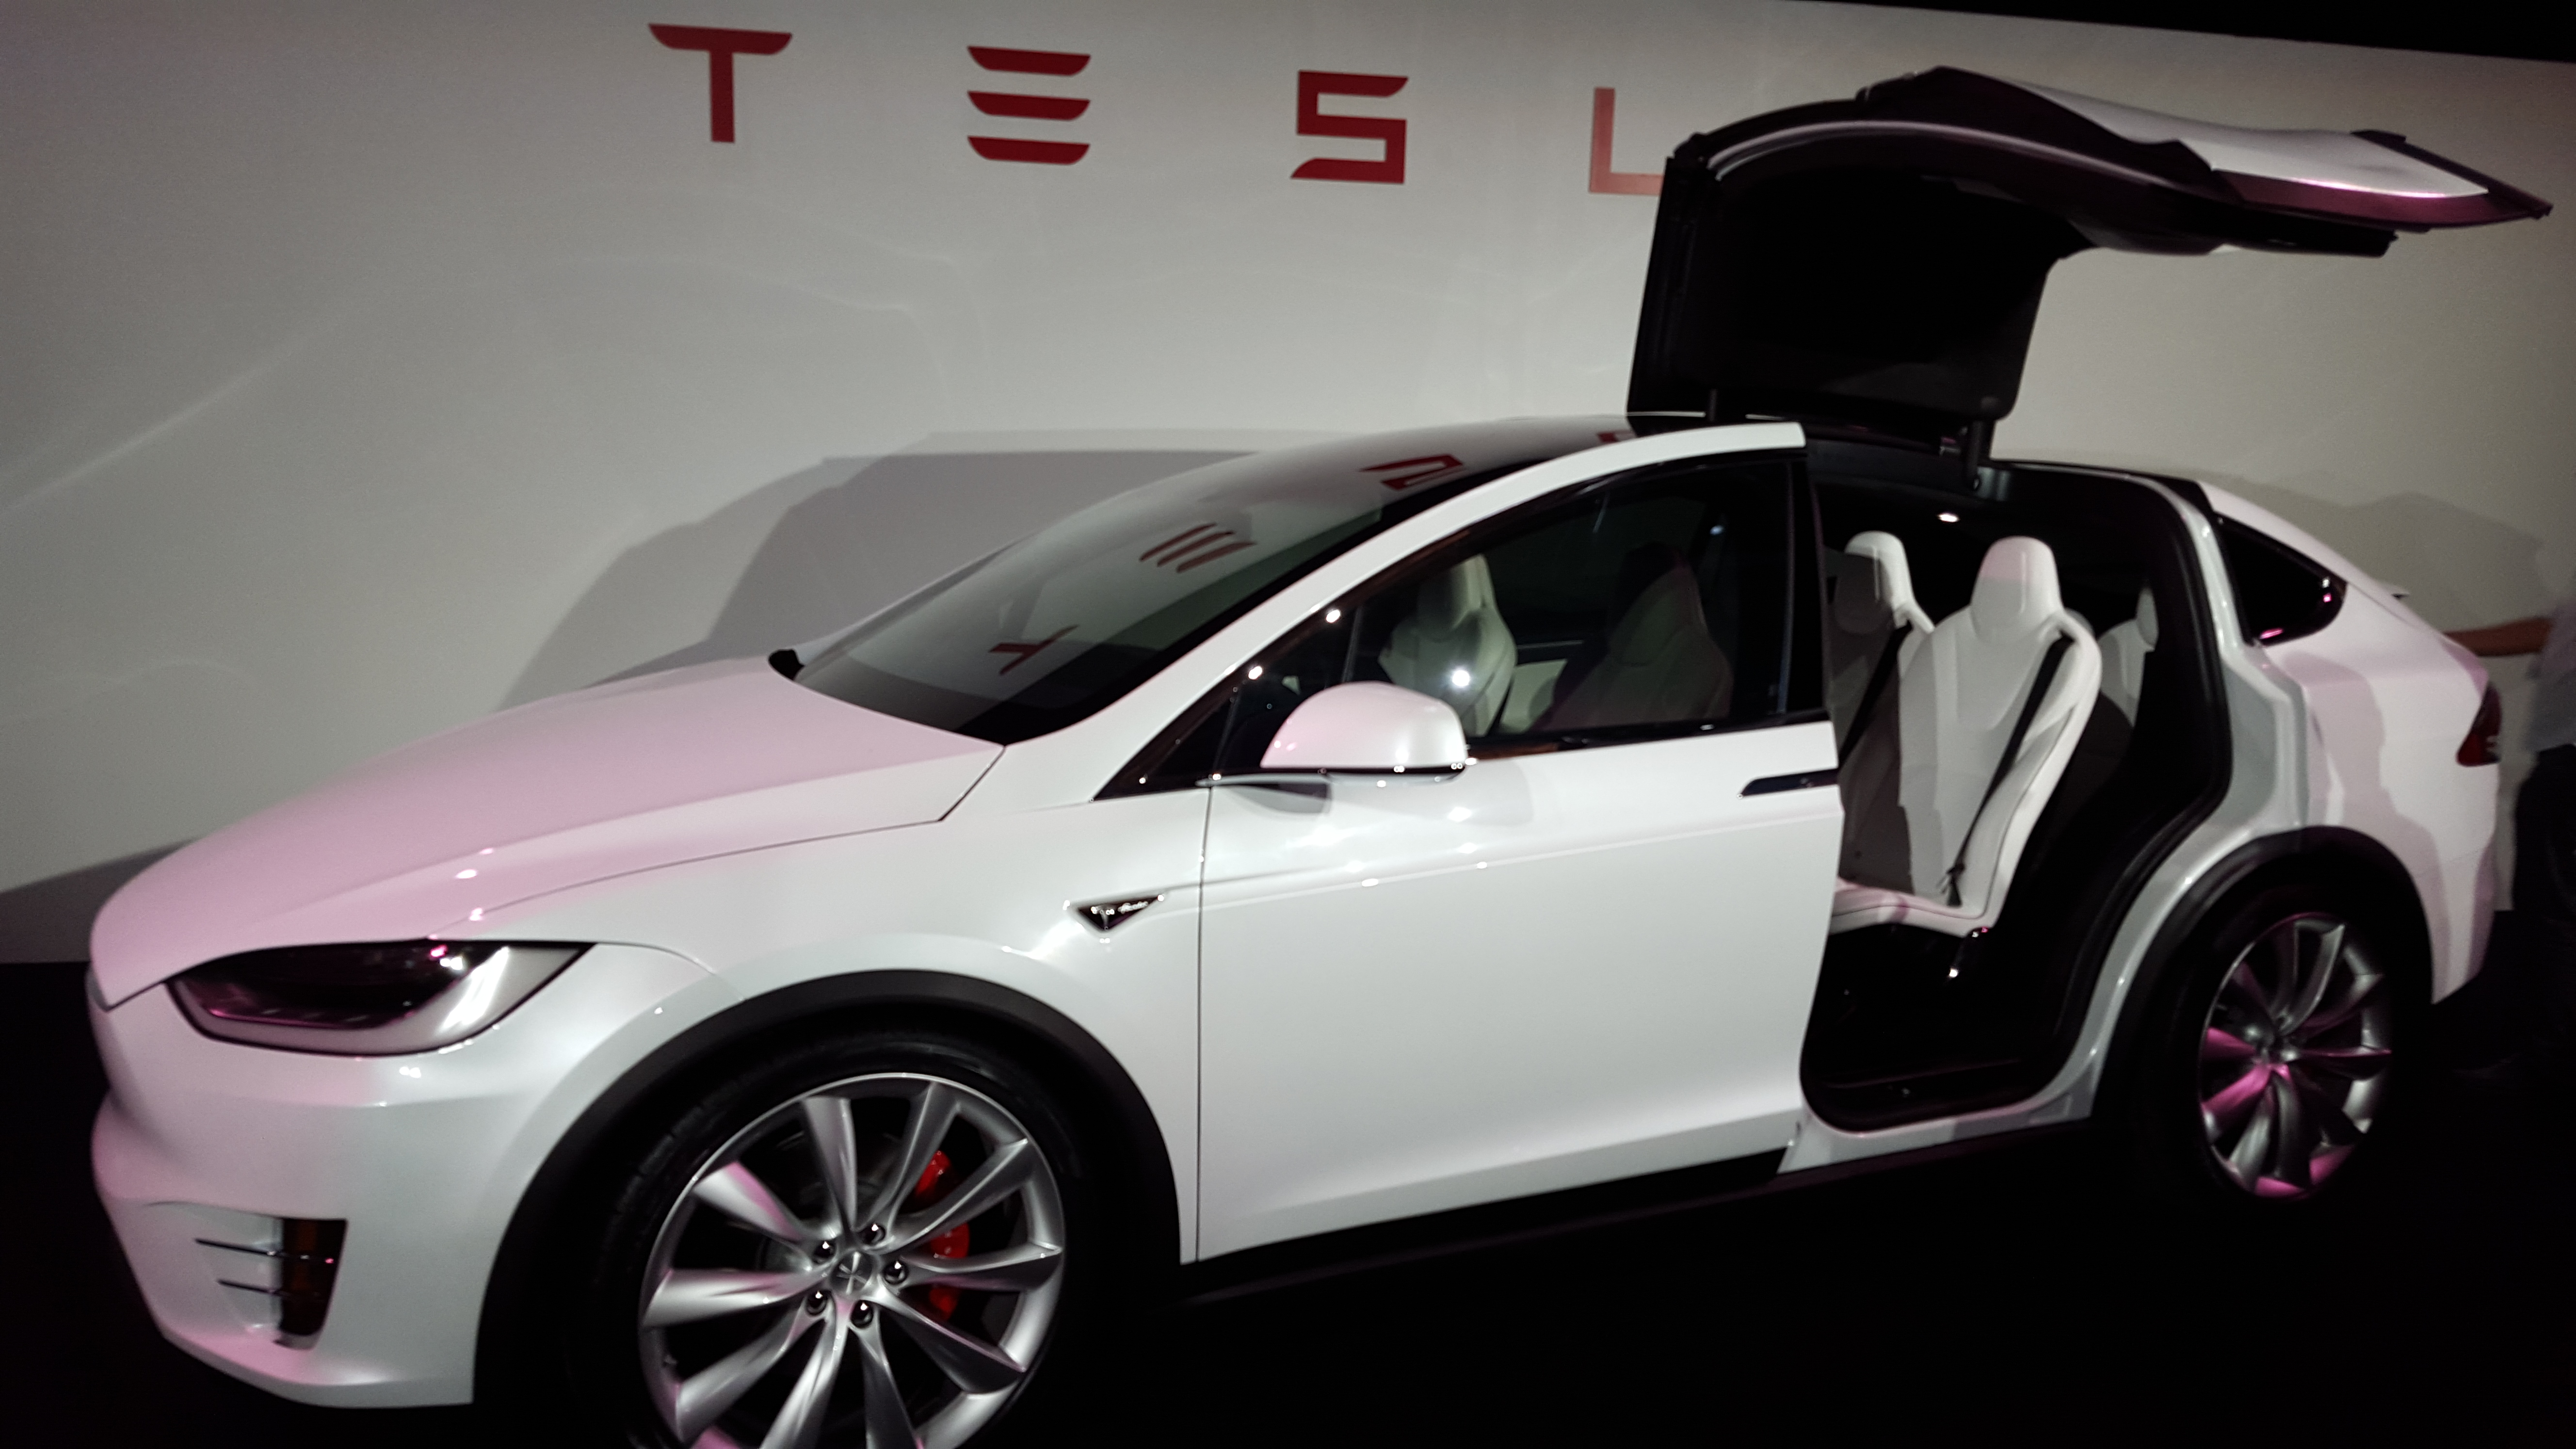 Tesla Motors' highly anticipated Model X was delivered to six customers Tuesday night at the company's Fremont, Calif. factory.